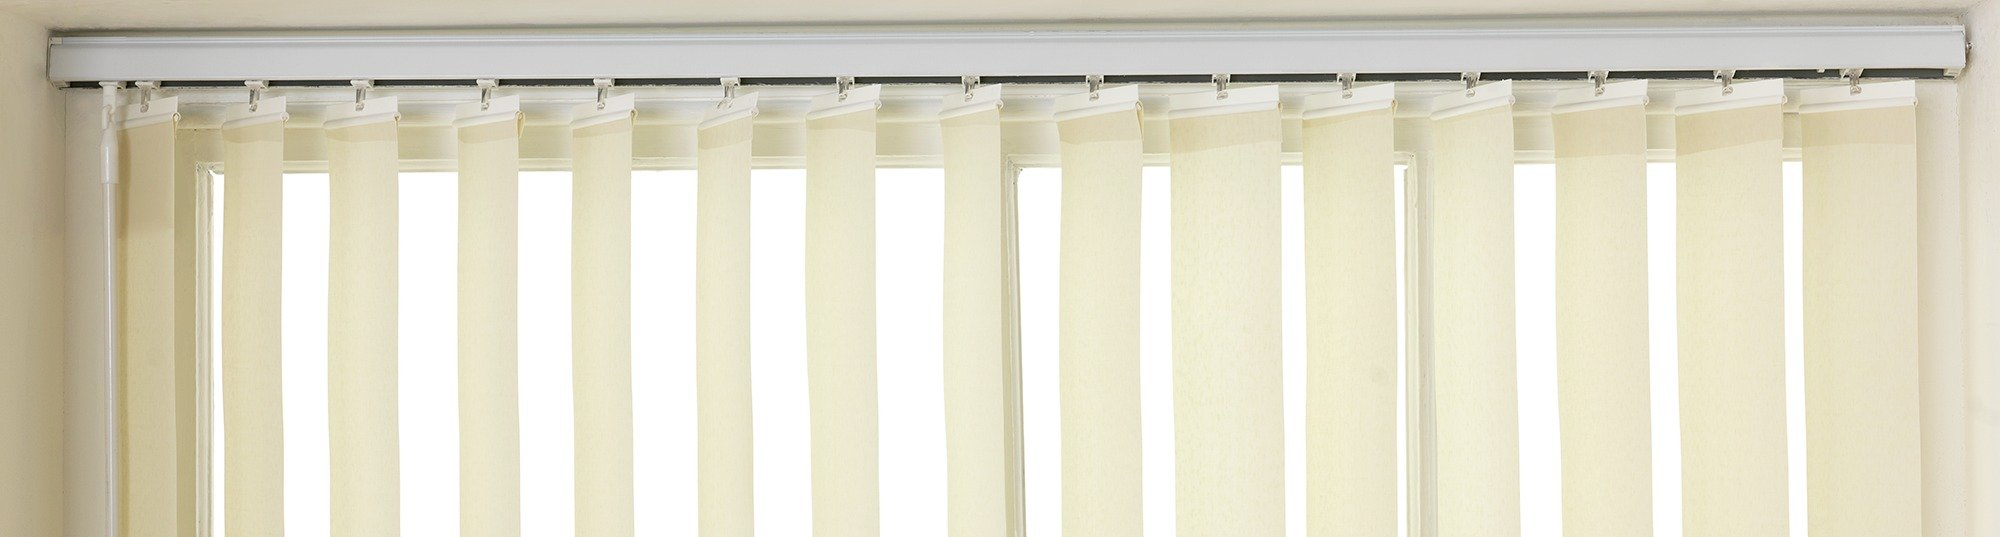 Argos Home Vertical Blind Headrail - 4ft